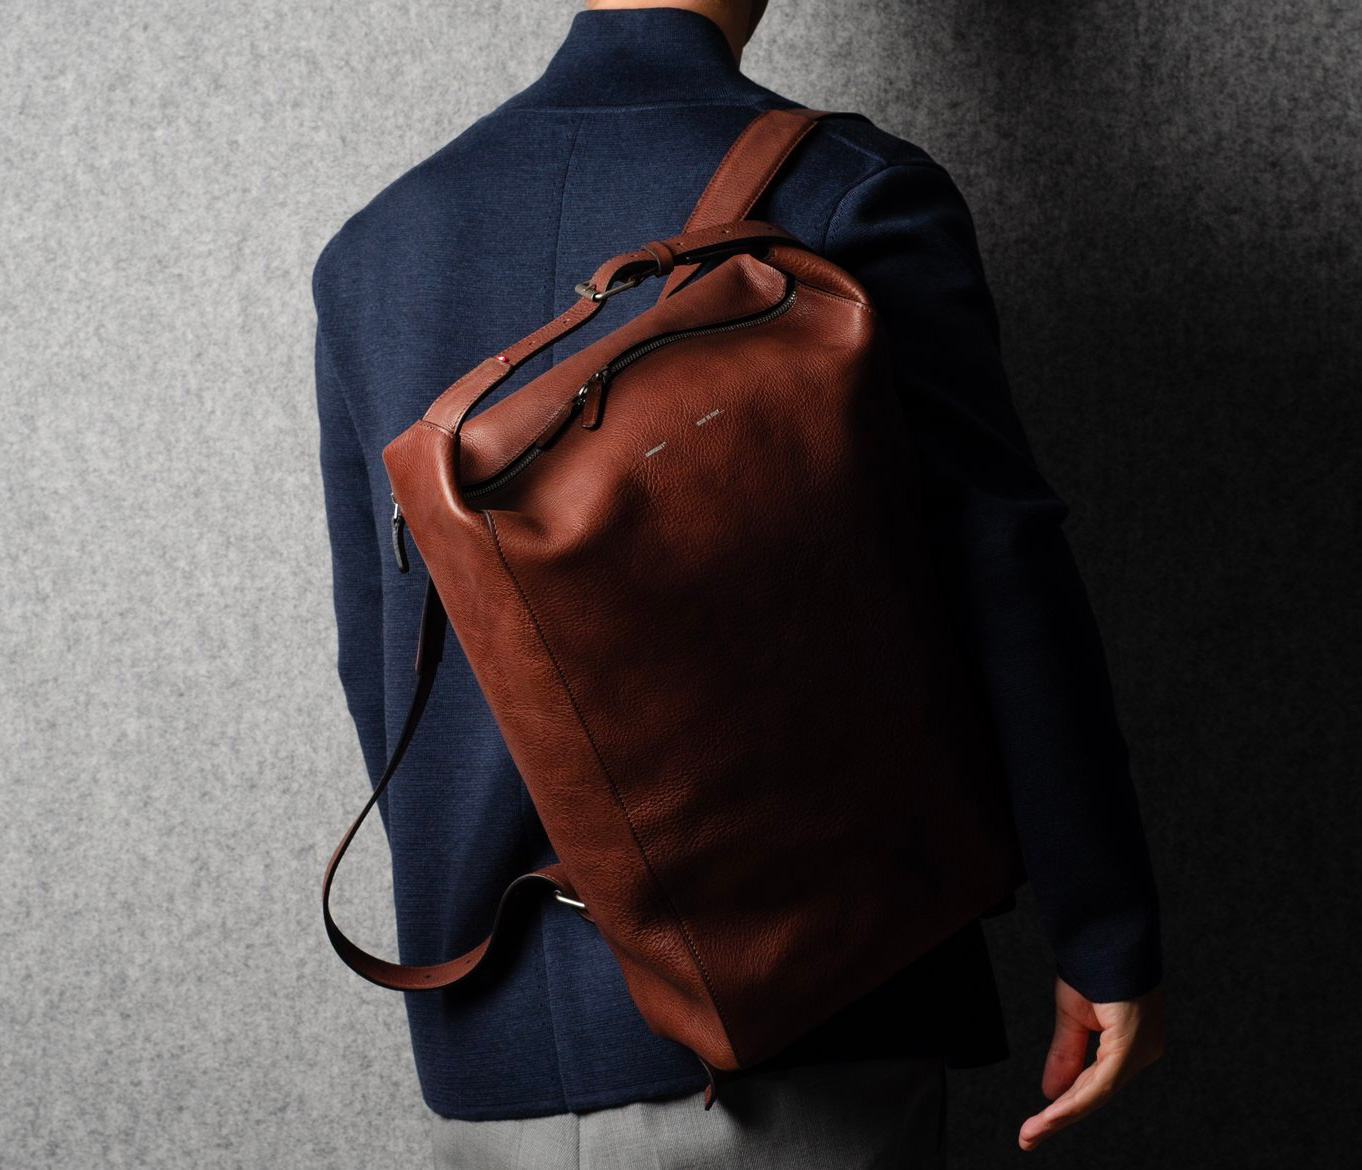 ac2ae1e9a28ed Hardgraft s Belted Backpack Looks Good in Leather